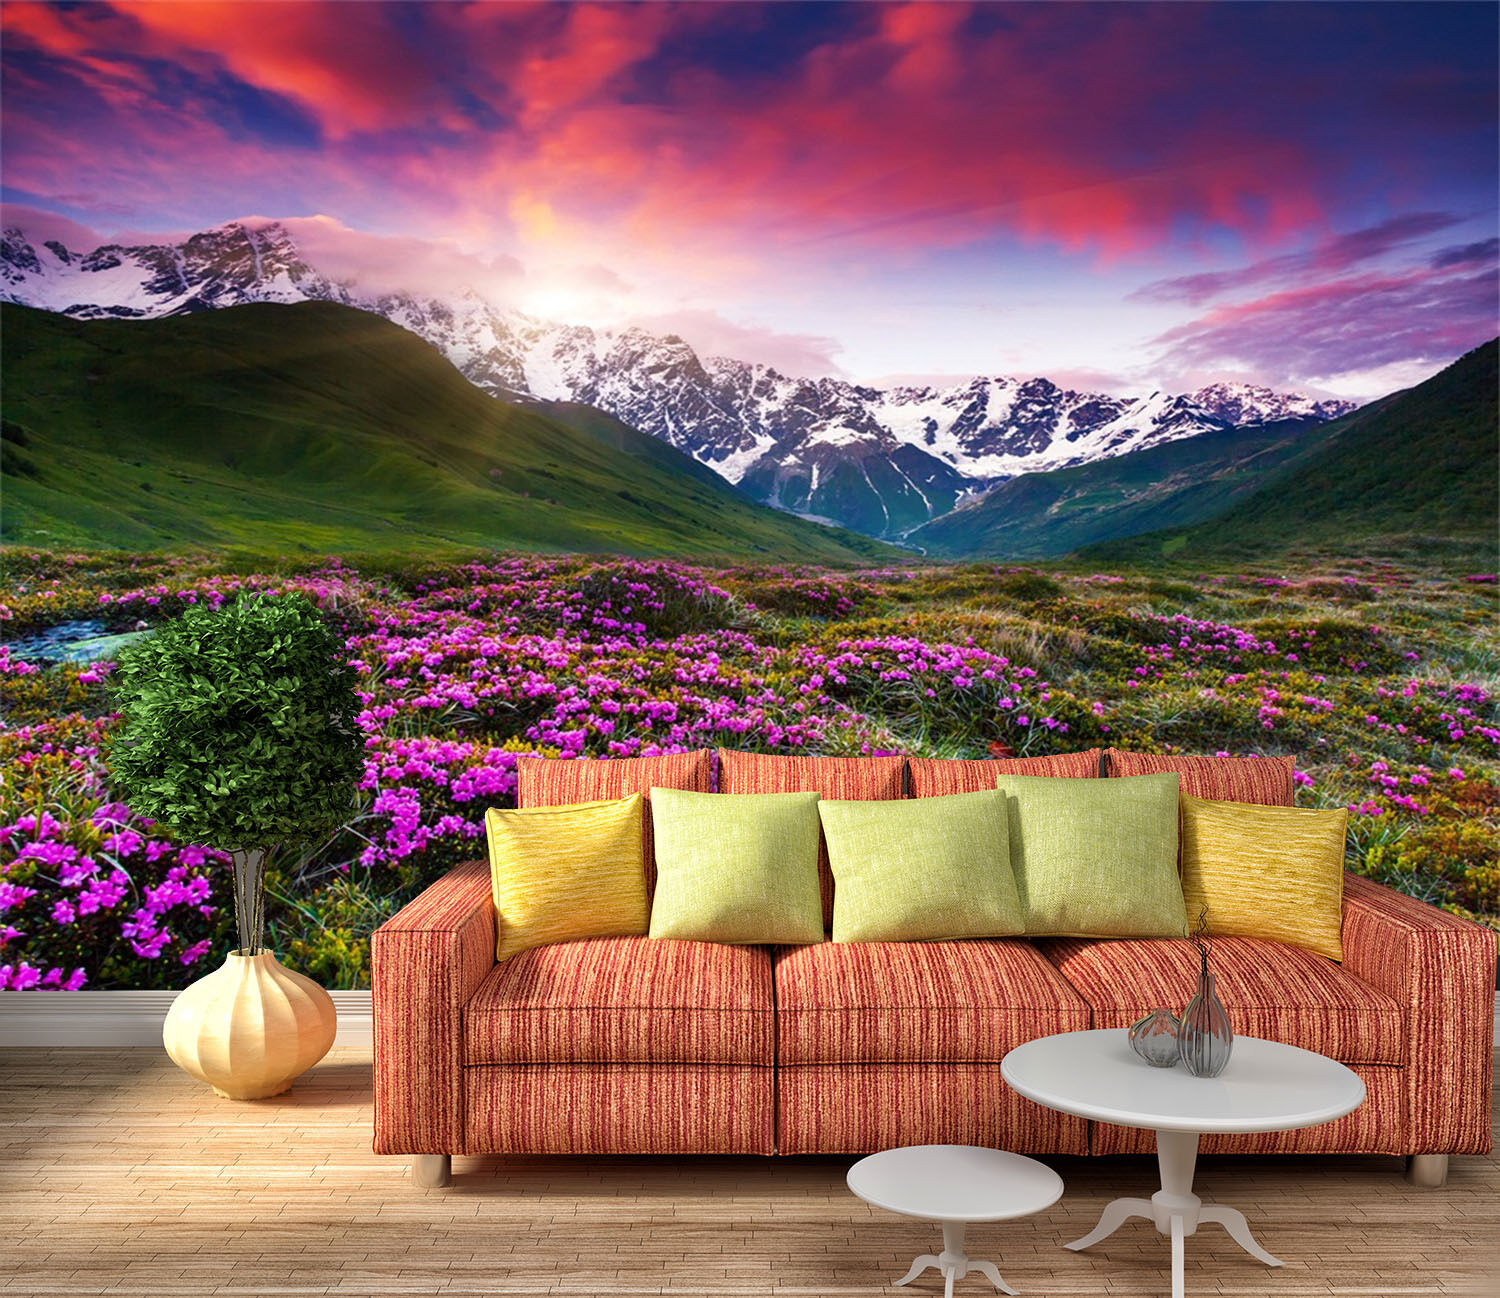 3D Sunset Flower Field 9 Wall Paper wall Print Decal Wall Deco Indoor wall Mural